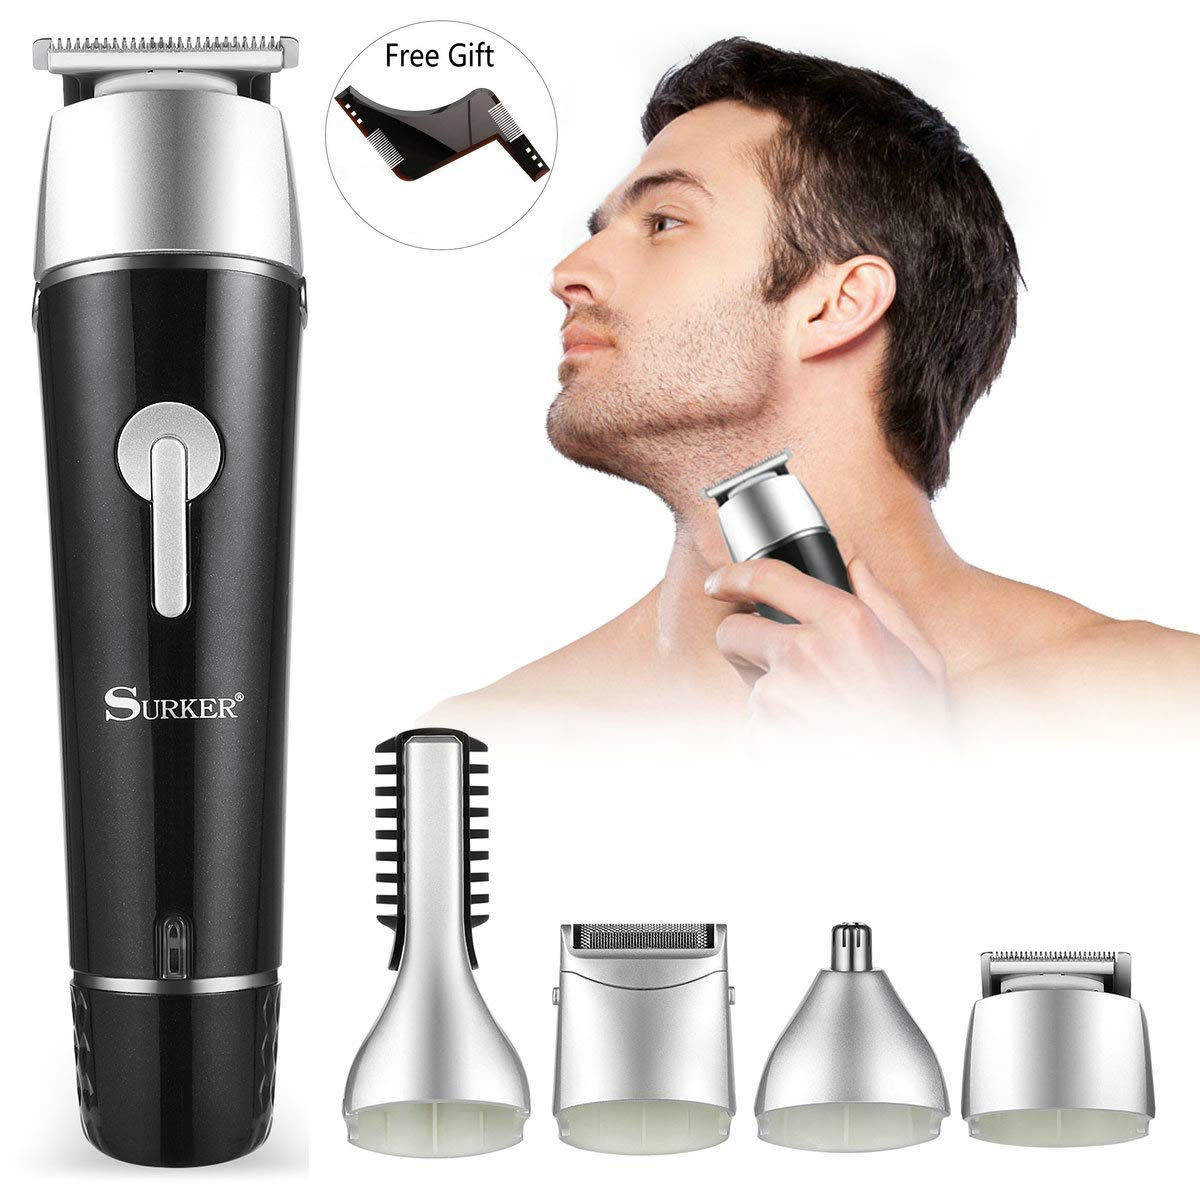 Electric Grooming Kit for Men, 5 in 1 Multi-functional Waterproof Rechargeable Grooming Kit